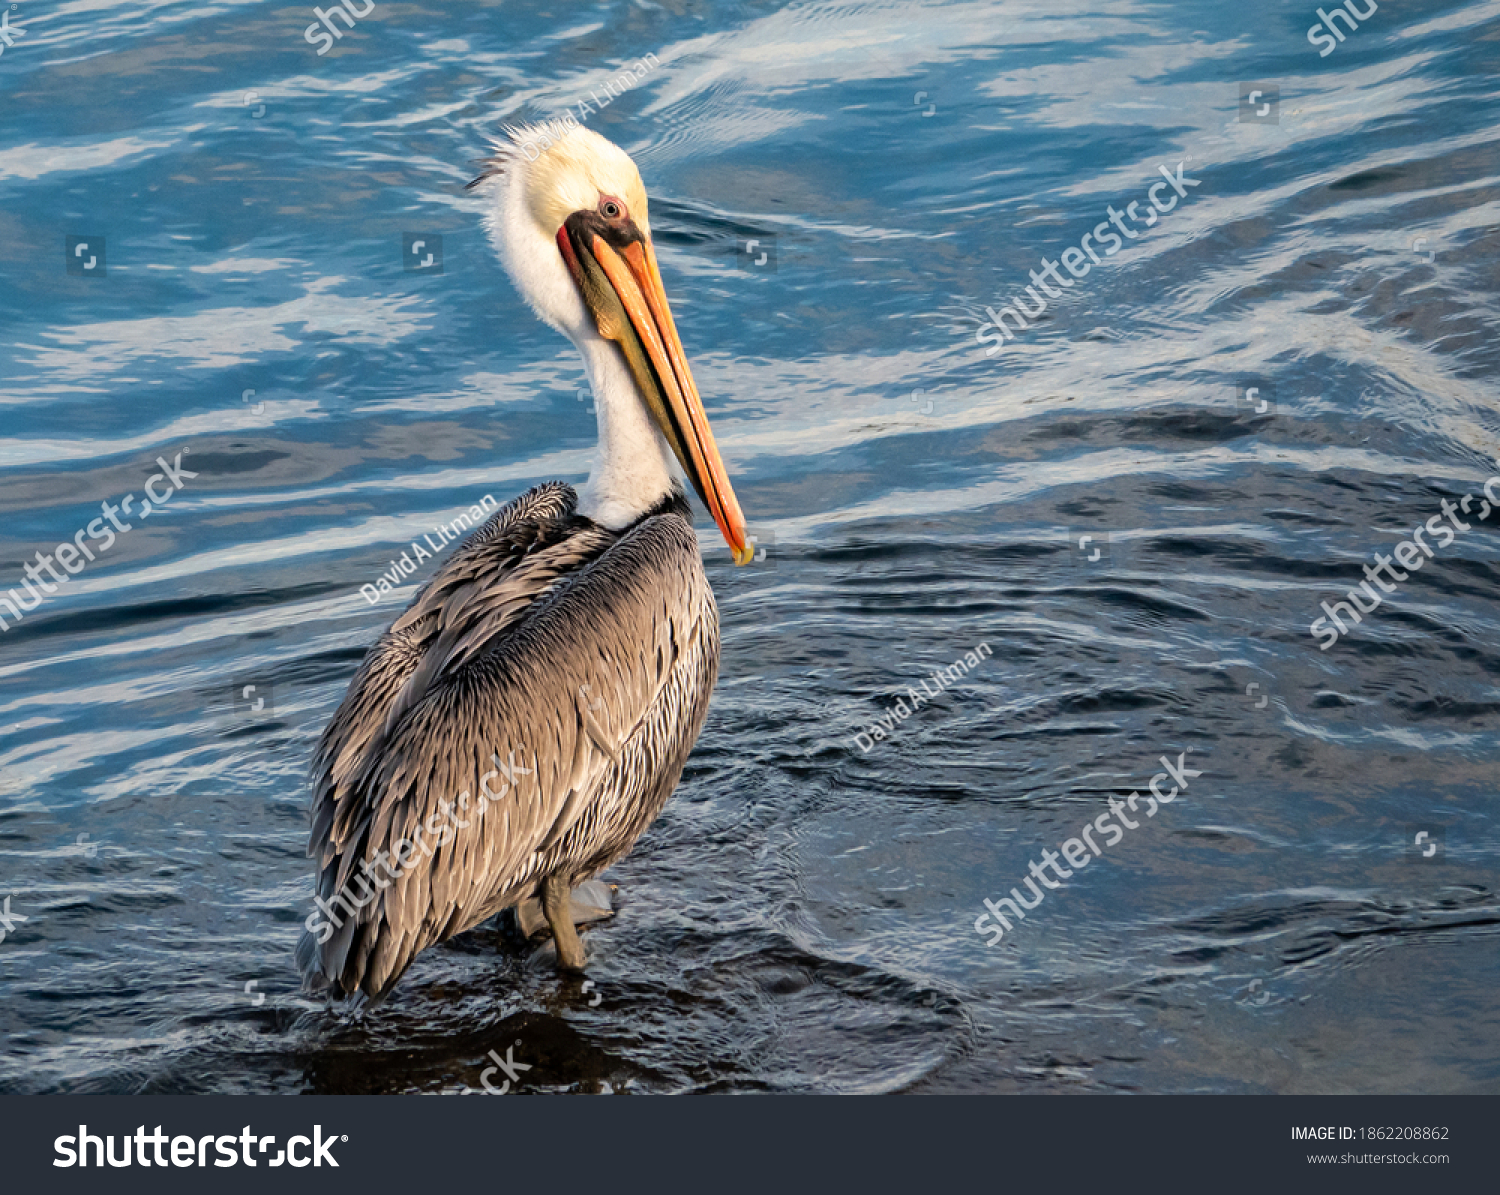 A California (Pacific) Brown Pelican (Pelecanus occidentalis) wades in shallow water of the Monterey Harbor and Marina, along the central coast of California.